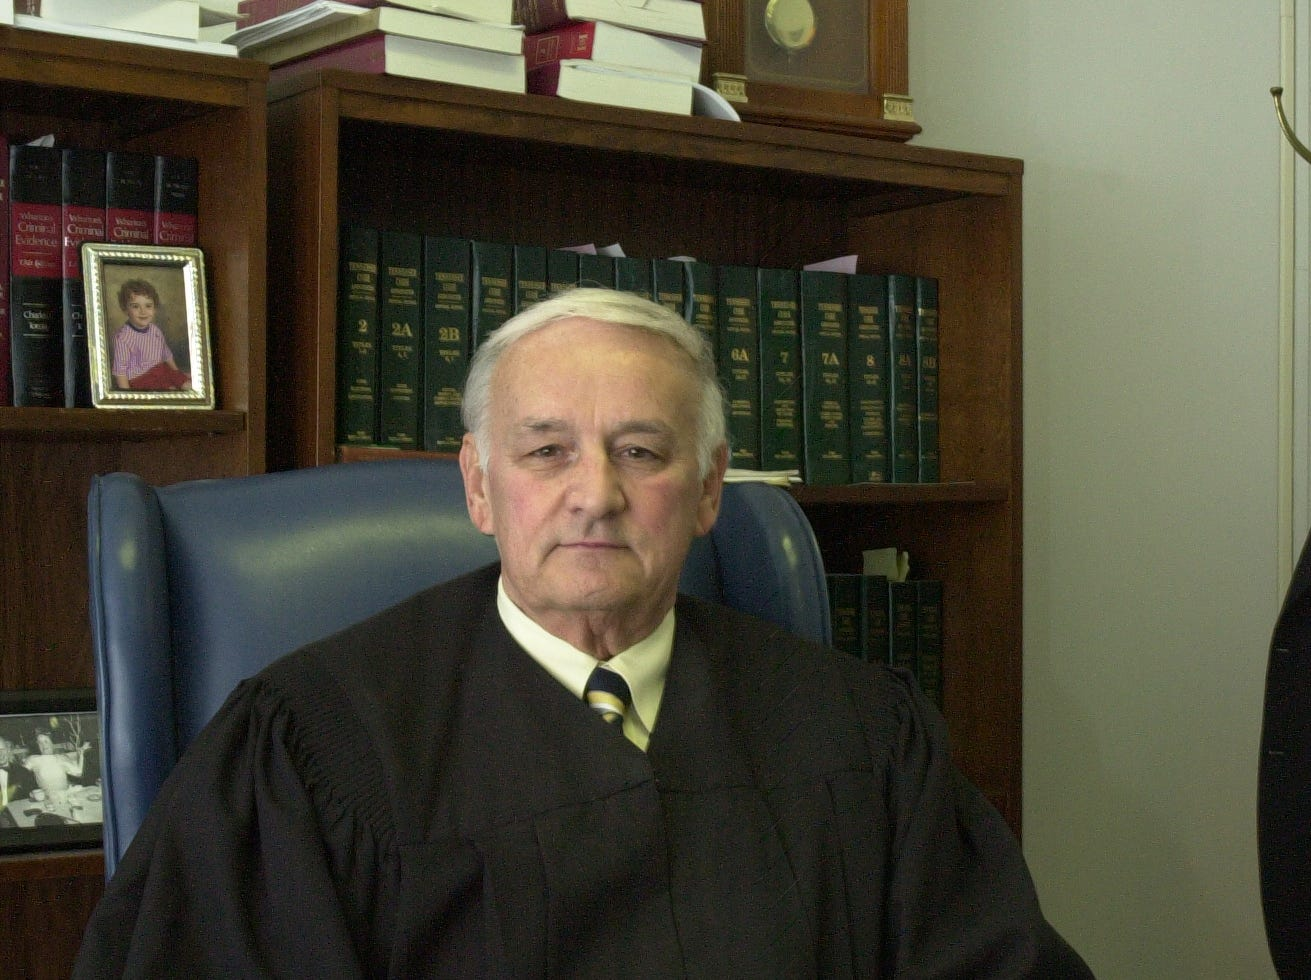 James B. Buddy Scott Jr., who has served as Anderson County's criminal and circuit court judge since 1978, is resigning Friday, Aug. 26, 2005